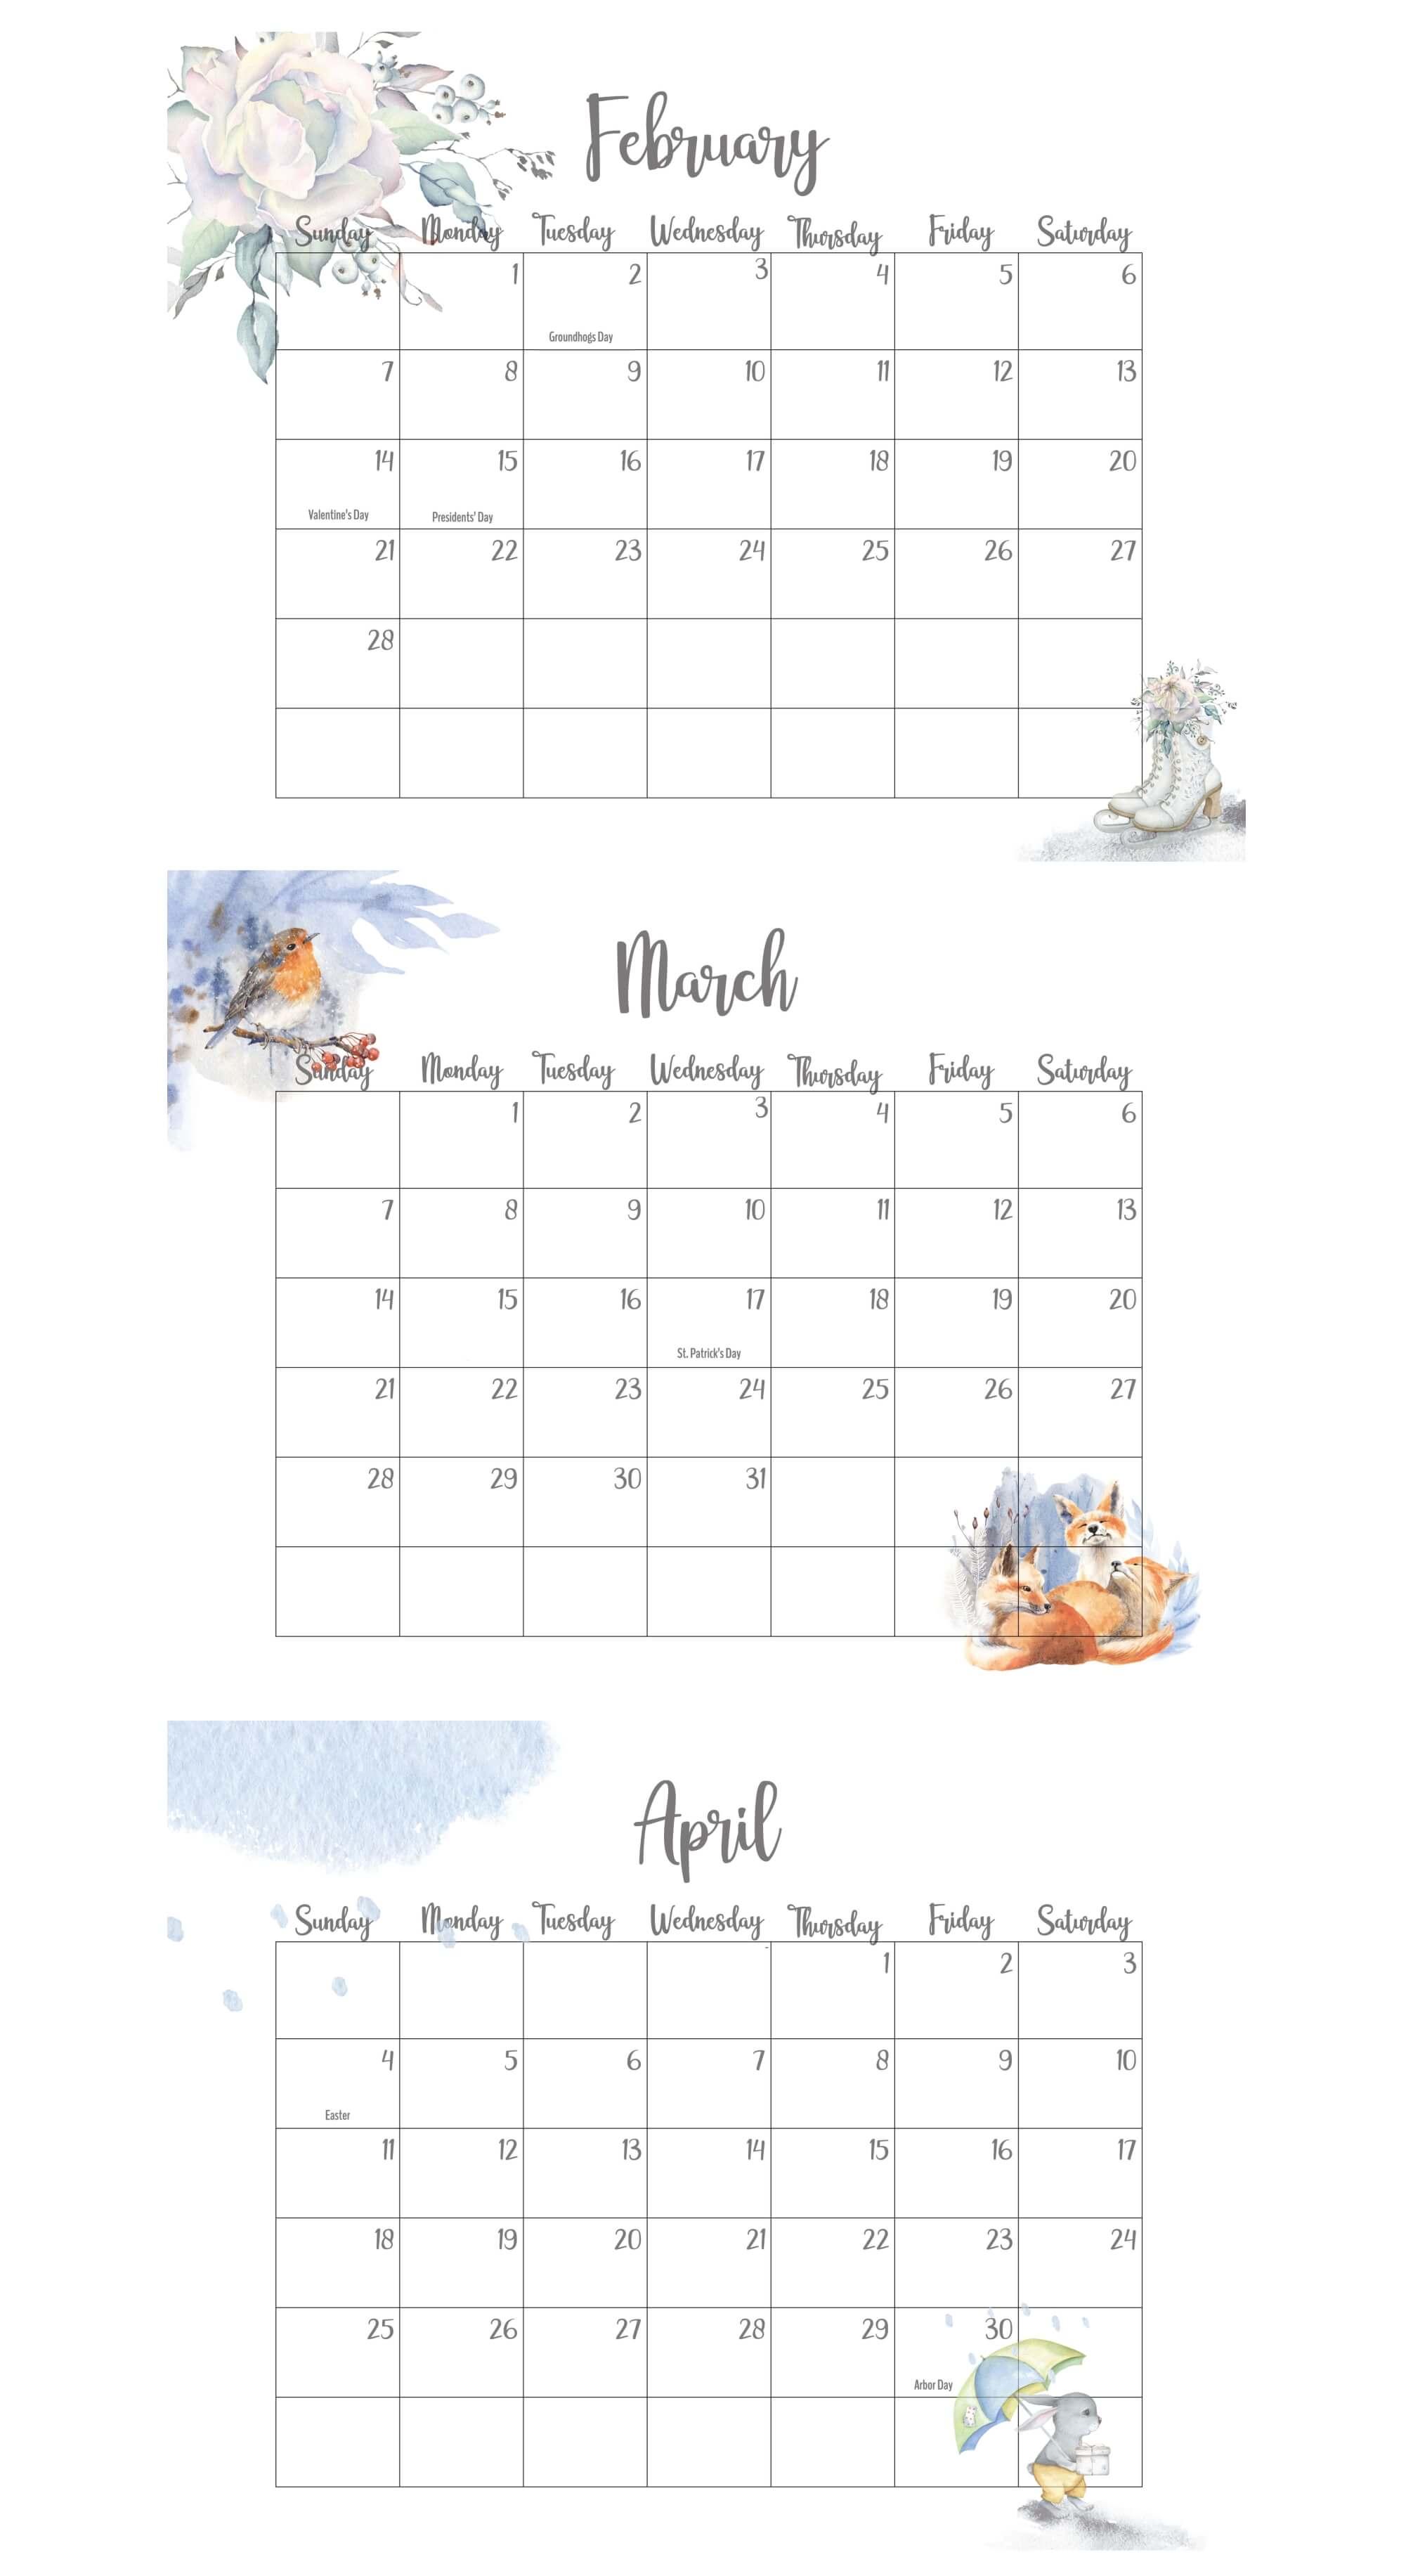 February March April 2021 Calendar With Holidays